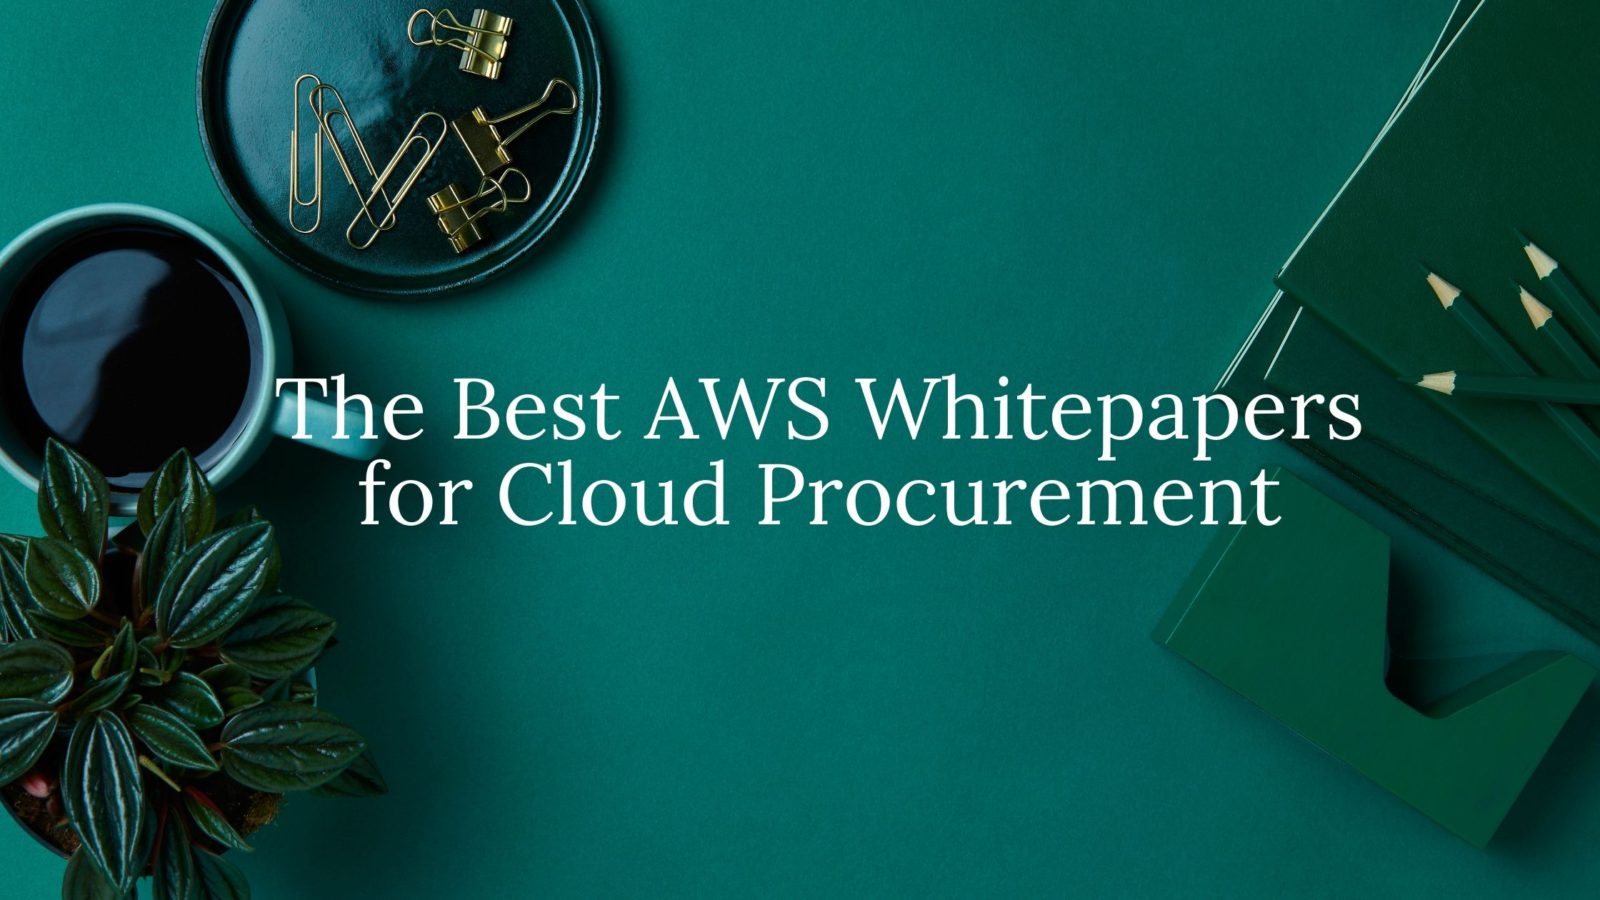 AWS whitepapers